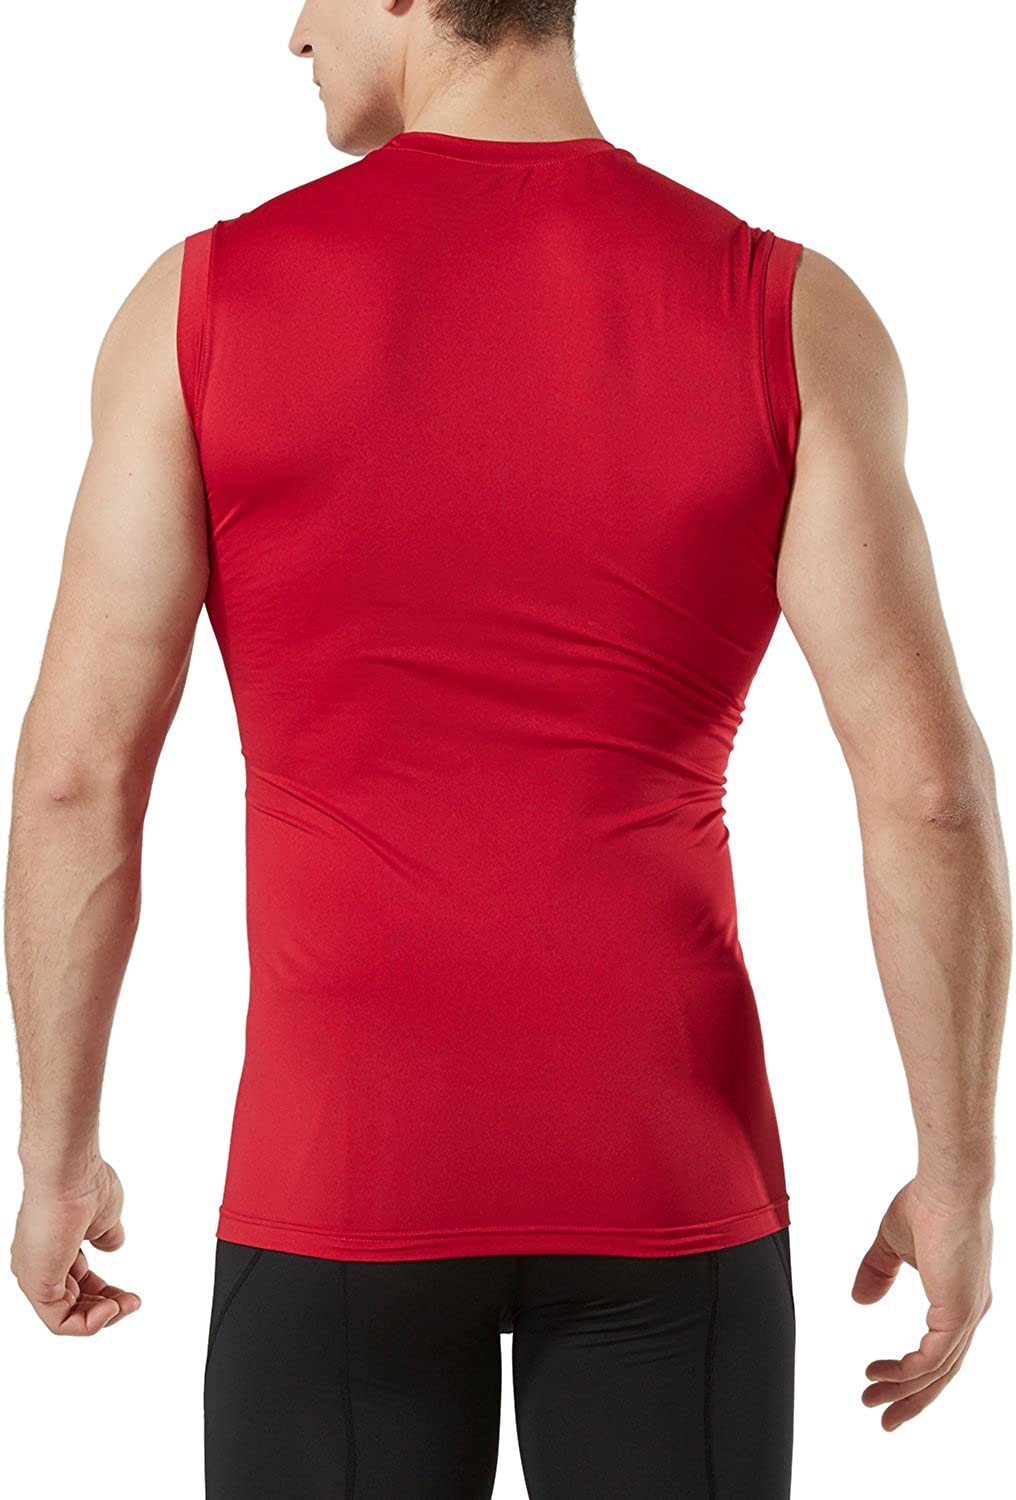 Dry Fit Running Compression Cutoff Shirts Athletic Training Tank Top TSLA 1 or 3 Pack Mens Sleeveless Workout Shirts